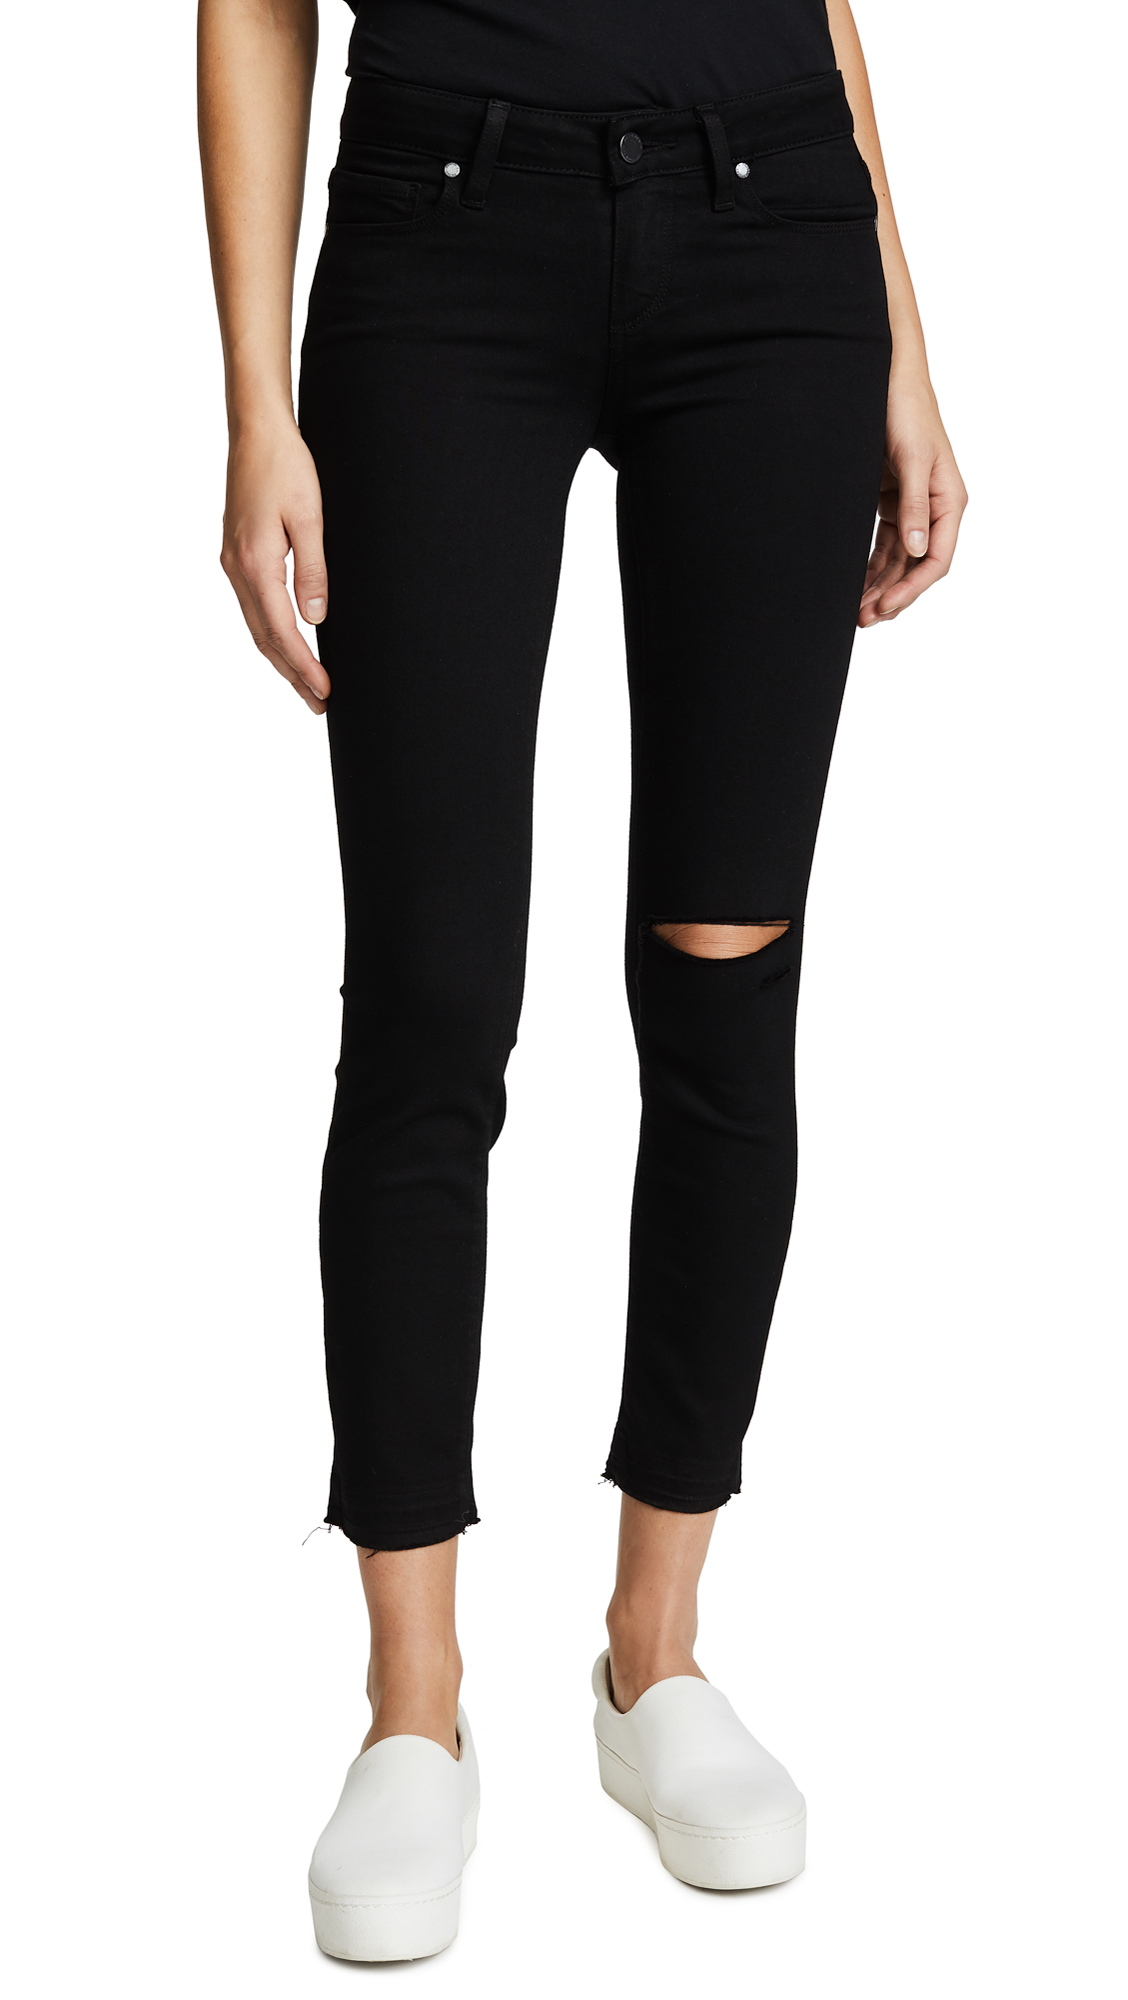 PAIGE Verdugo Crop Skinny Jeans In Jett Black Destructed